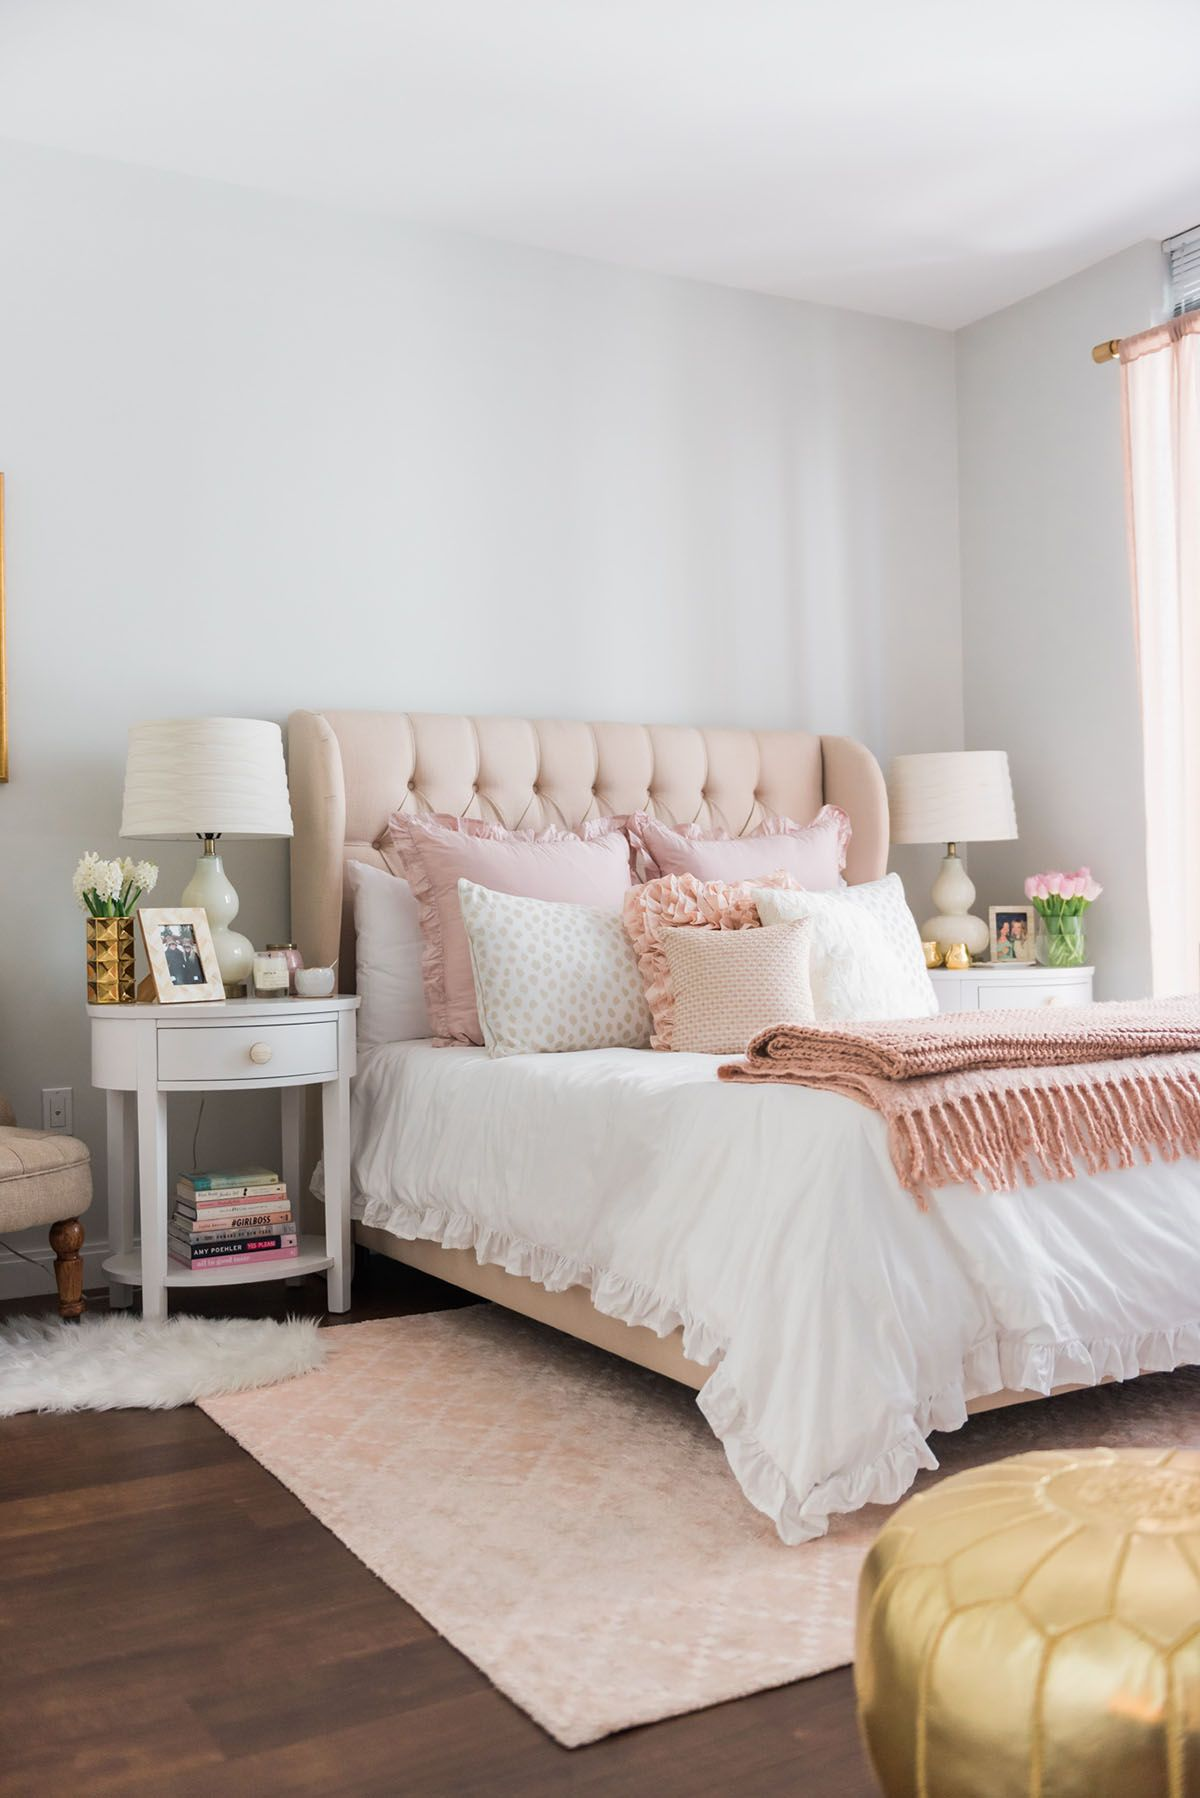 The Color of Your Bed Sheets May Be Attracting Bed Bugs images